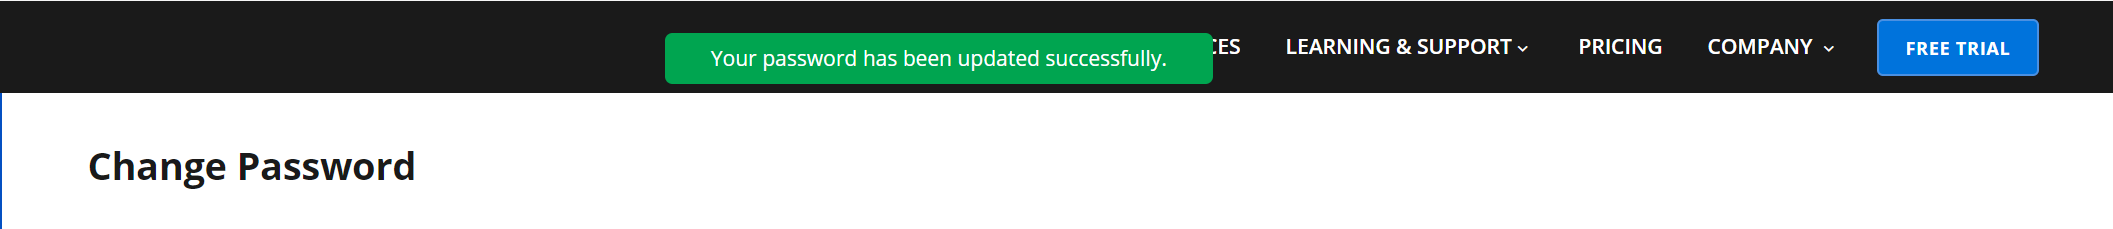 Password changed success message